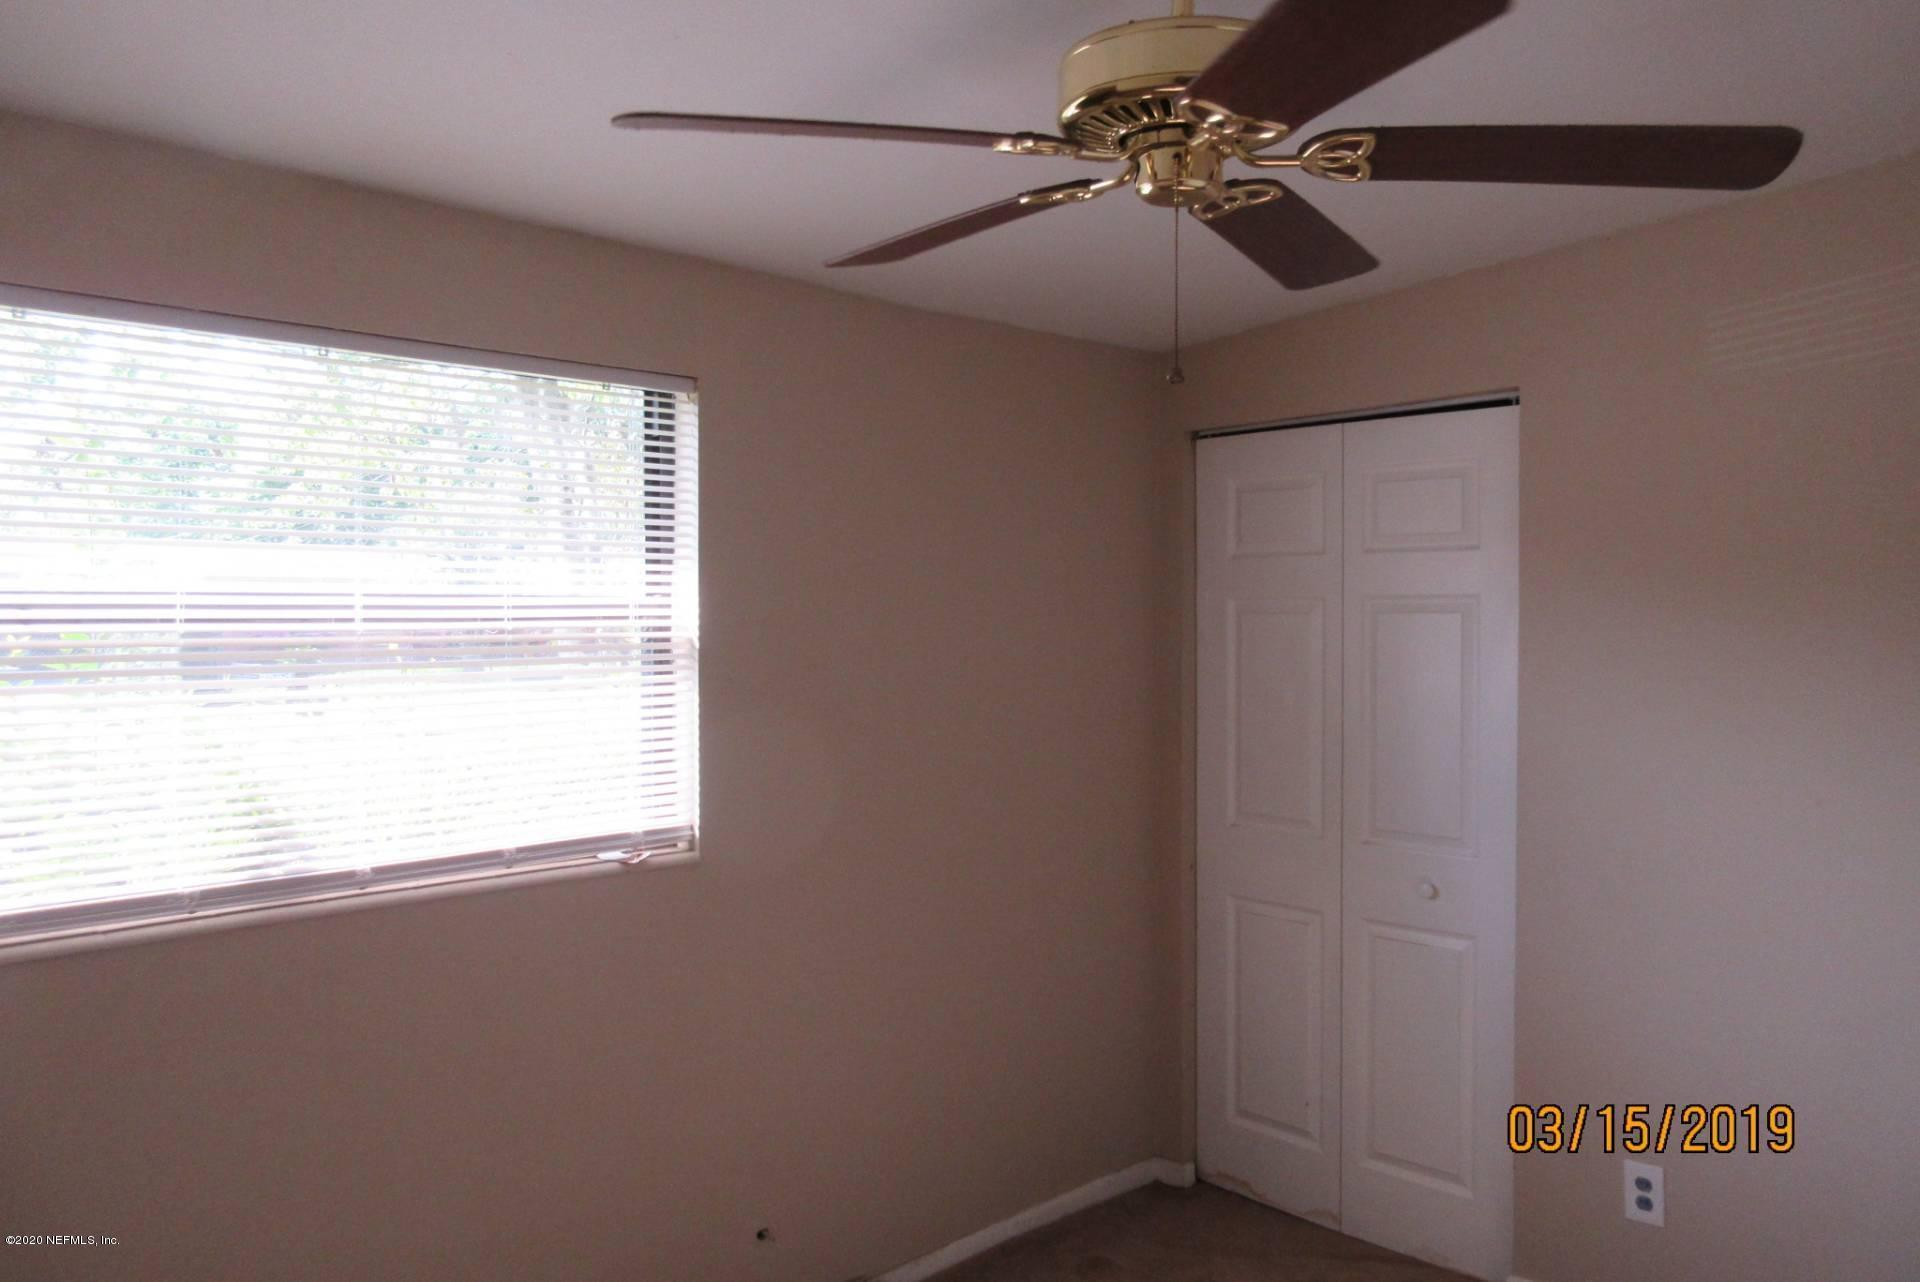 5039 DONCASTER, JACKSONVILLE, FLORIDA 32208, 3 Bedrooms Bedrooms, ,1 BathroomBathrooms,Residential,For sale,DONCASTER,1080043